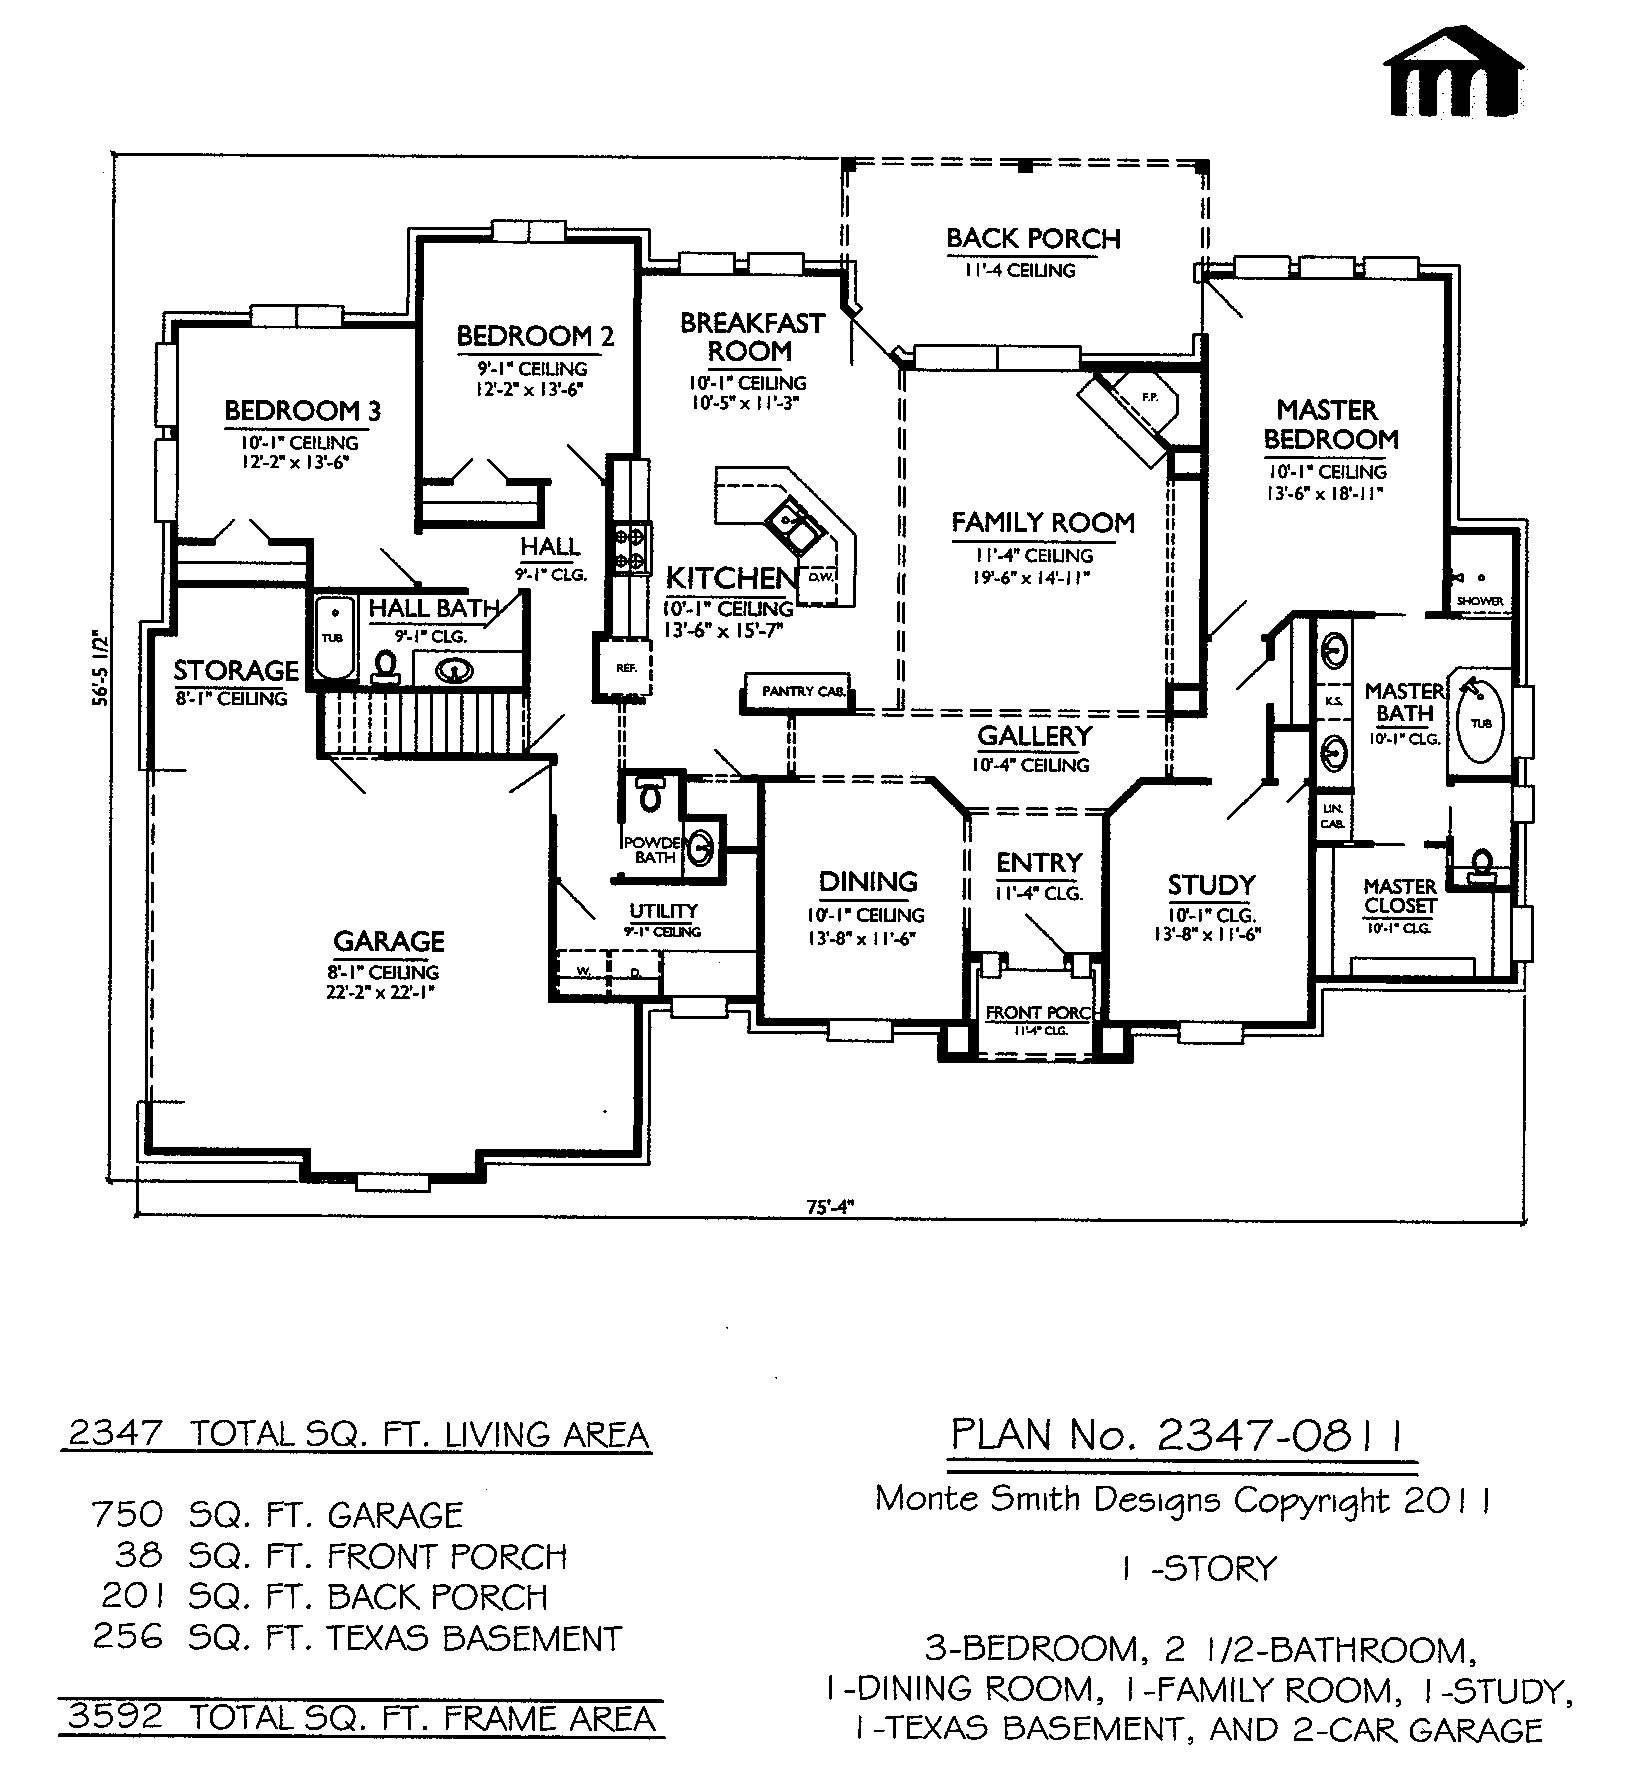 2 story 3 bedroom house plans vdara two bedroom loft 1 1 for Two bedroom house plans with loft